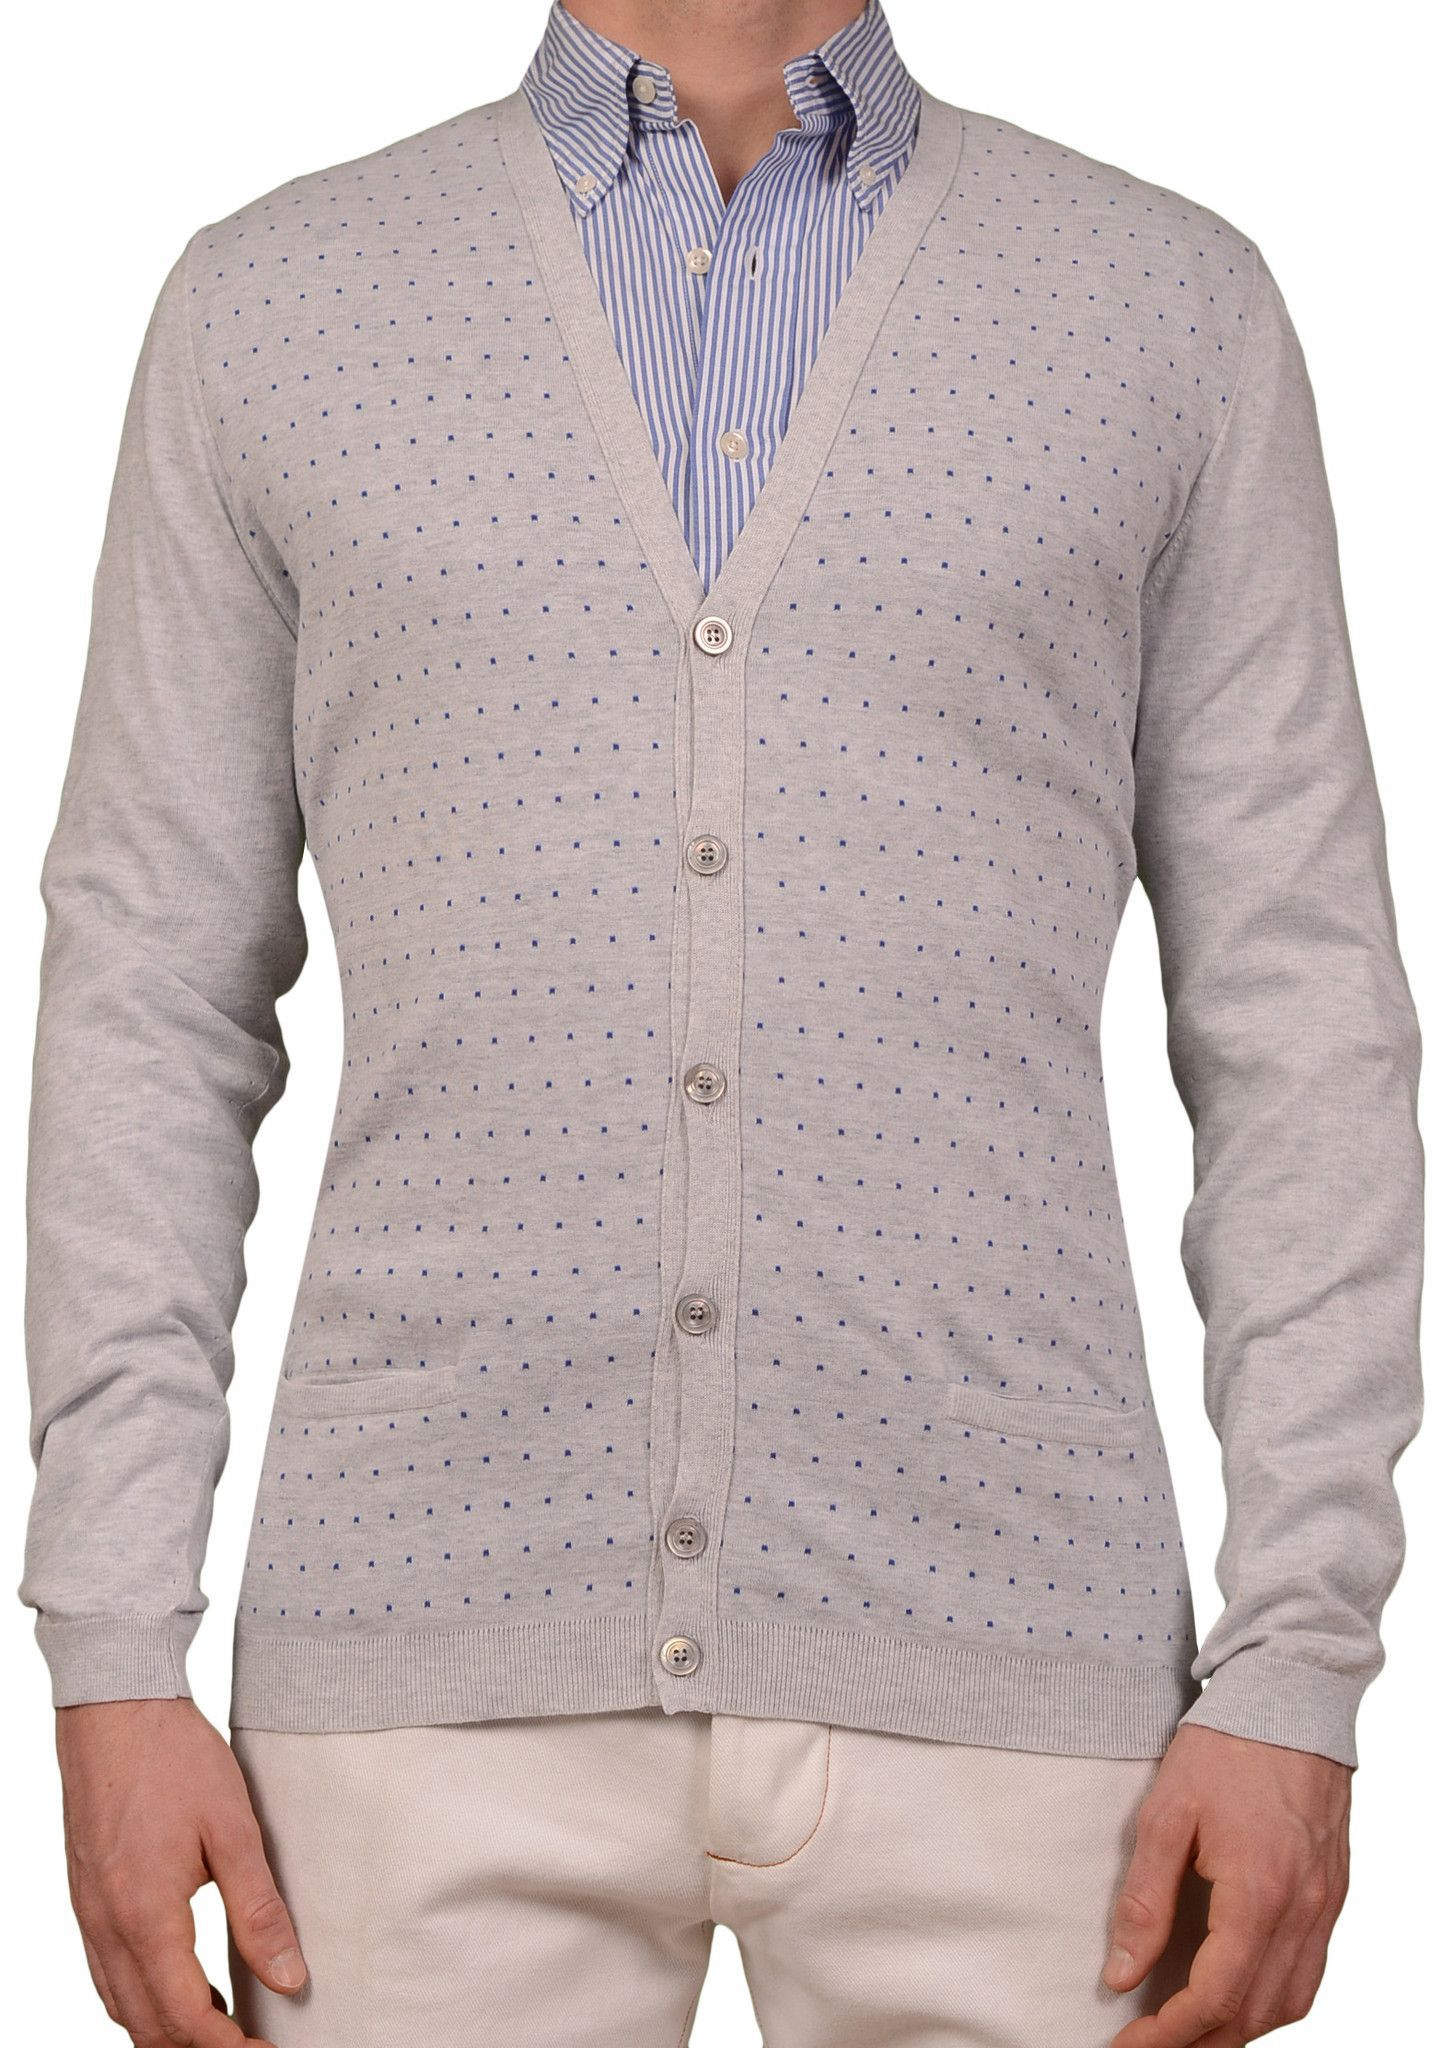 KITON Napoli Made In Italy Gray Polka Dot Cotton Cardigan Sweater ...